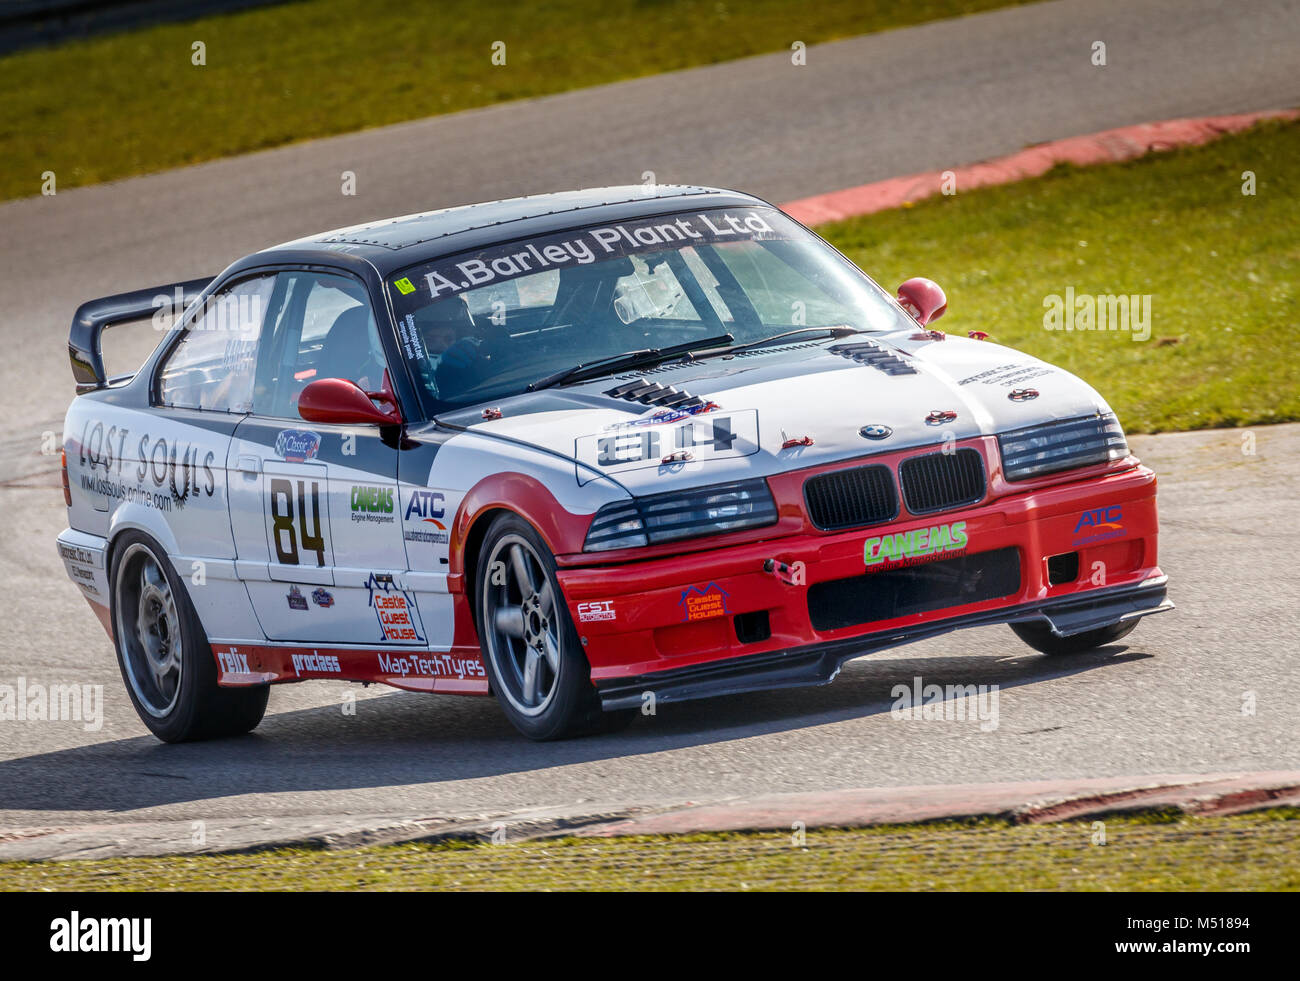 hight resolution of 1992 bmw e36 with driver tom barley during the cscc modern classics race at snetterton motor